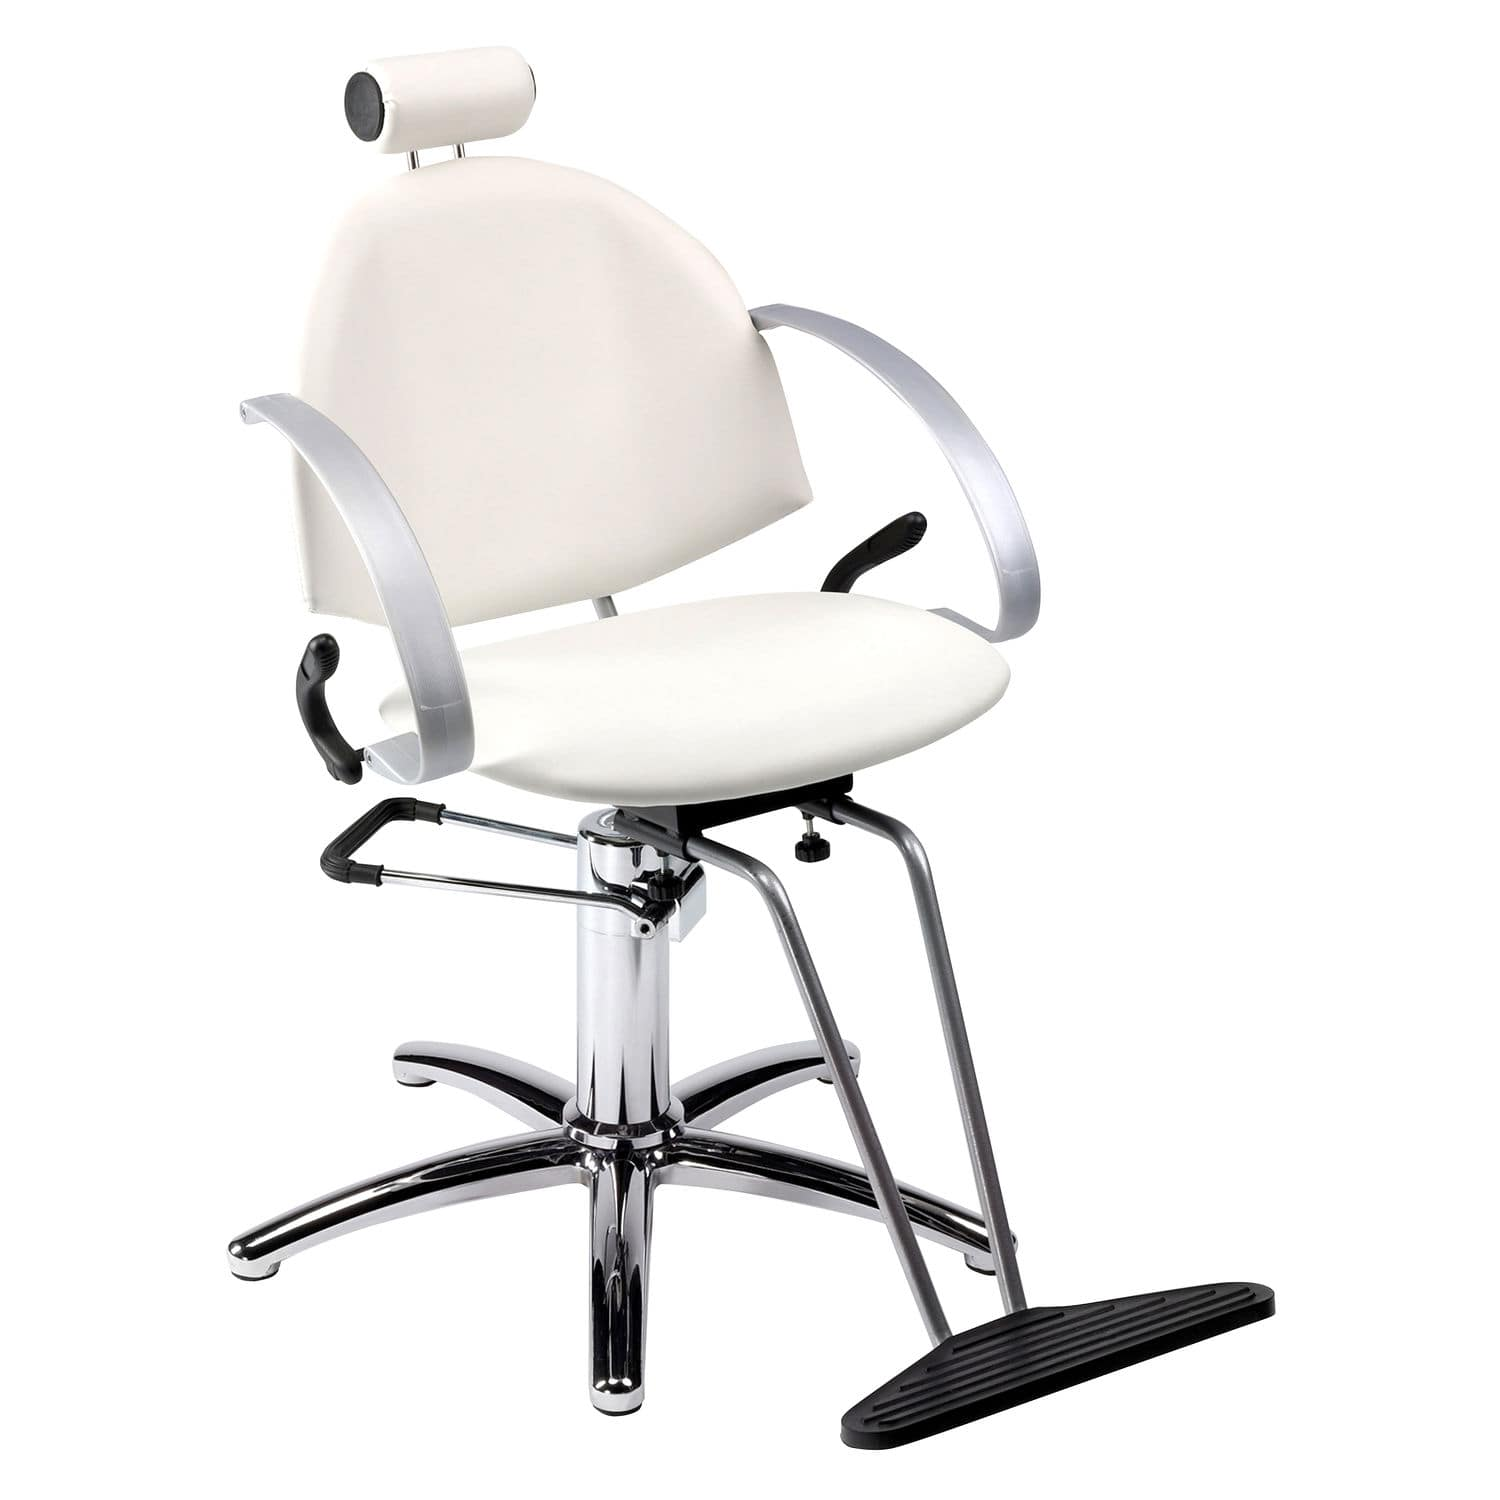 Fabric beauty salon chair / reclining / with hydraulic pump / adjustable - OPTIMA 775  sc 1 st  ArchiExpo & Fabric beauty salon chair / reclining / with hydraulic pump ... islam-shia.org